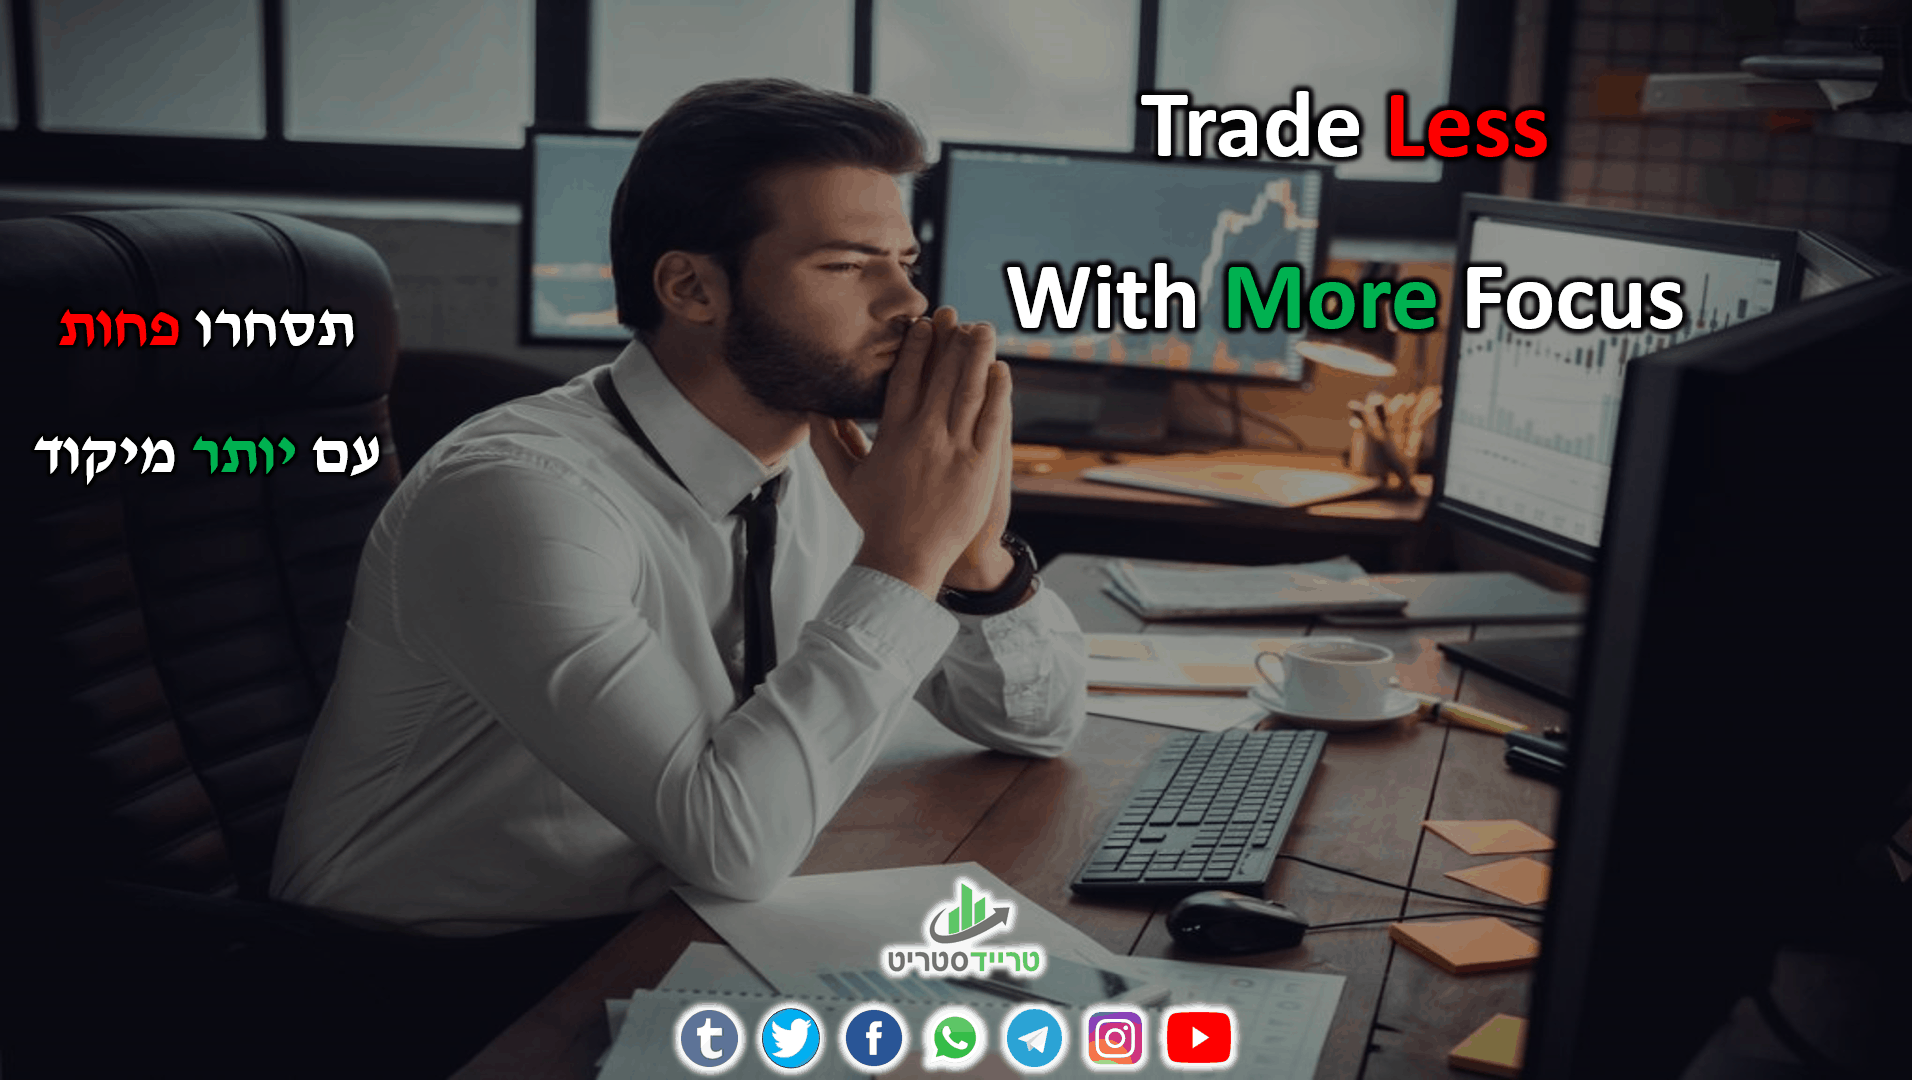 Trade Less With More Focus